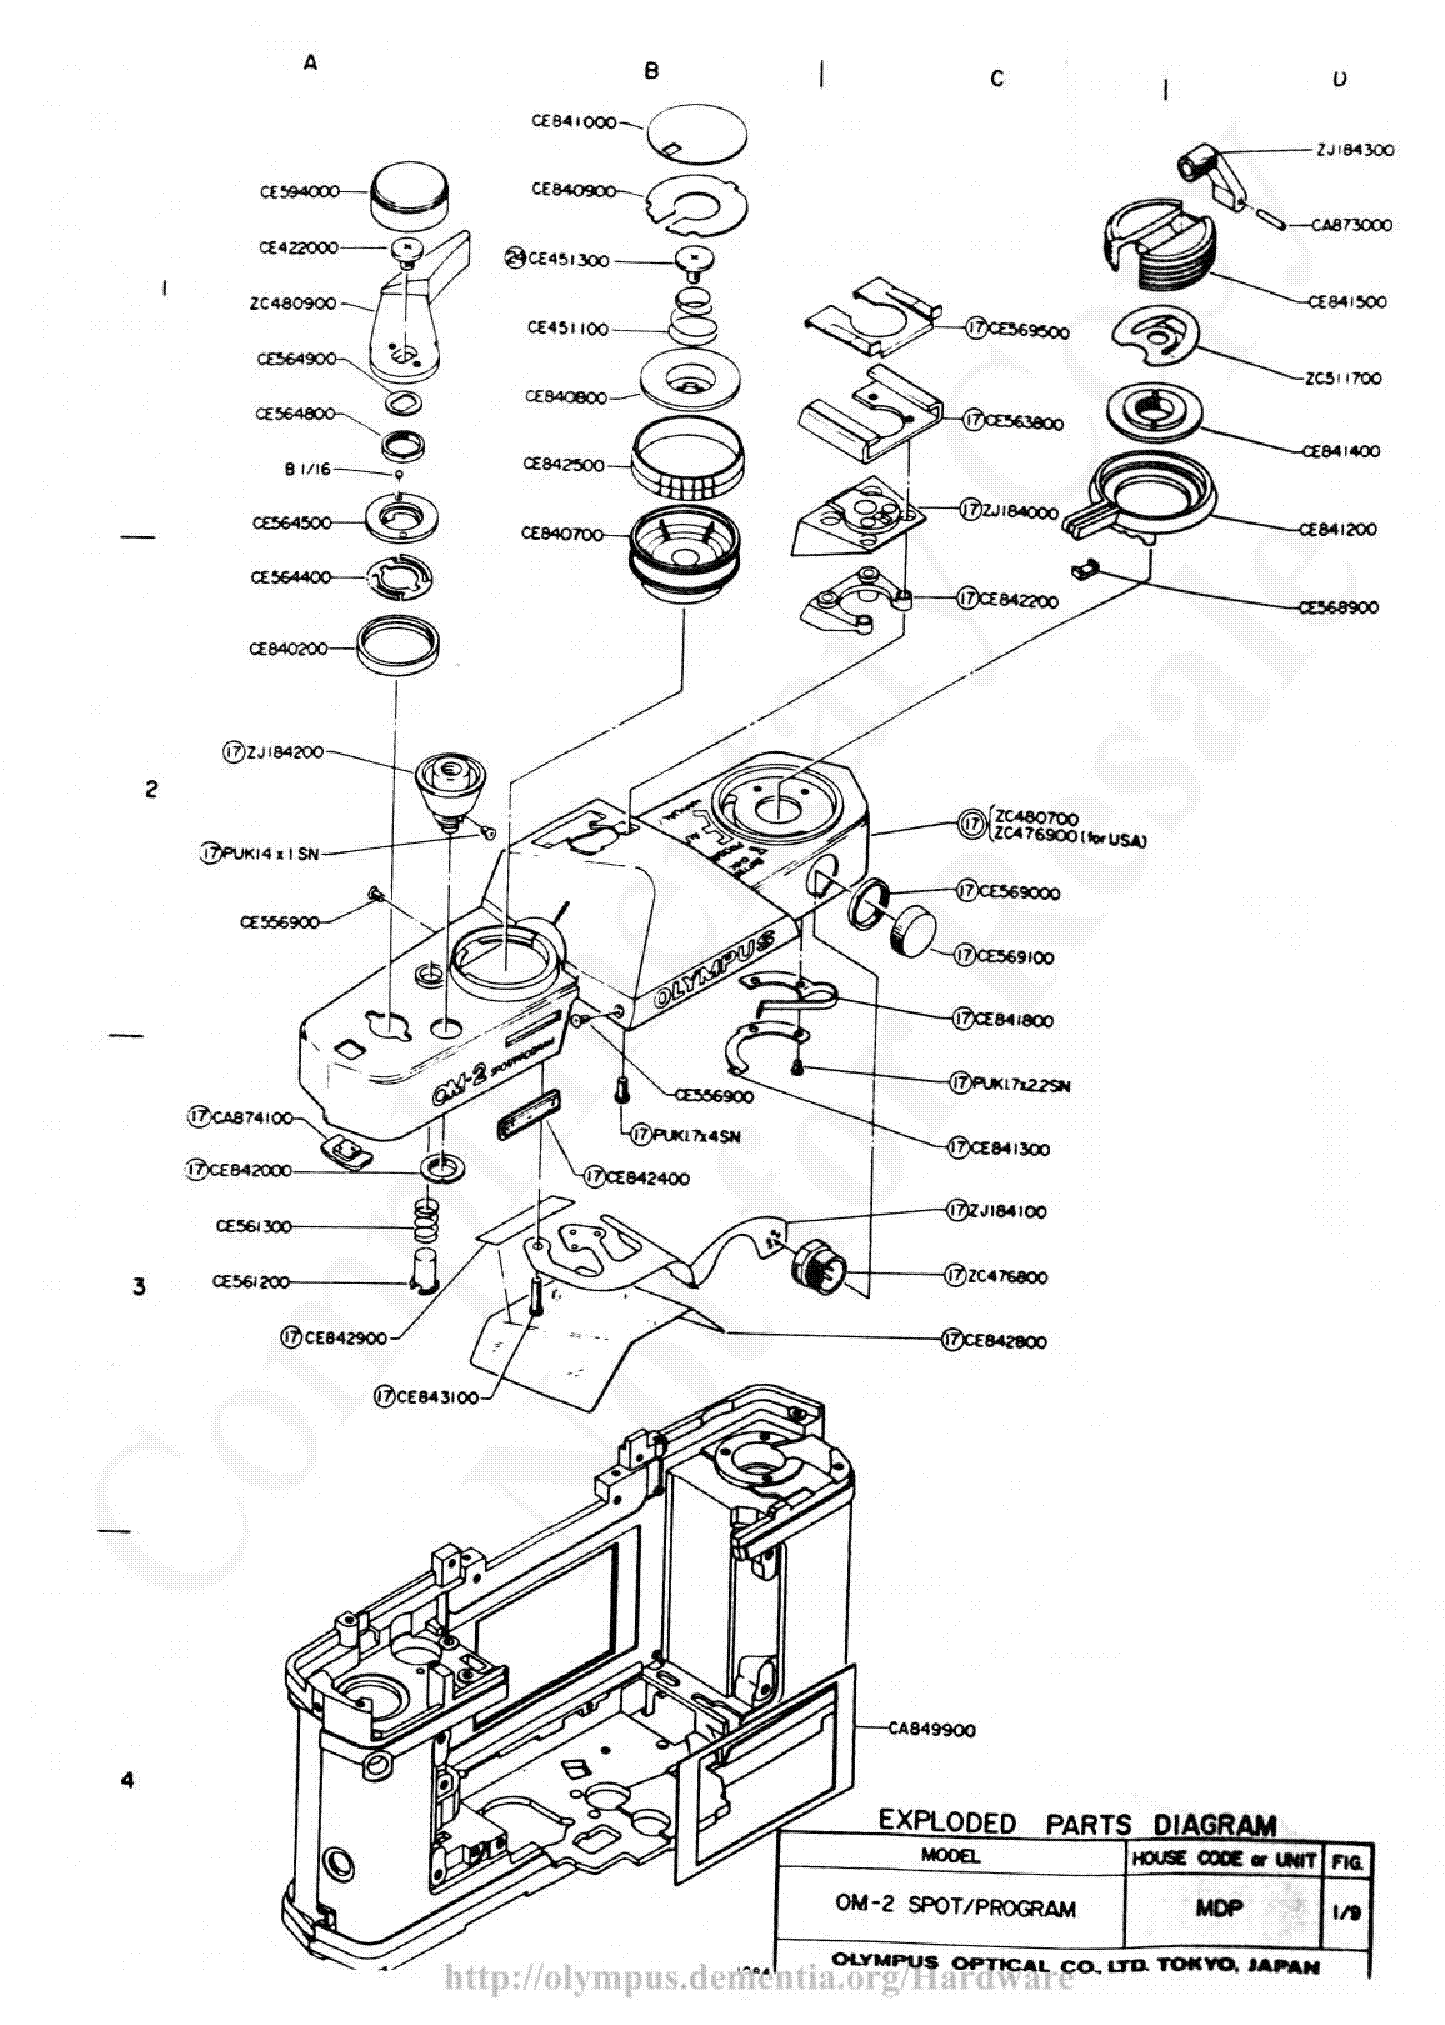 Olympus Om 2s Exploded Parts Diagram Service Manual